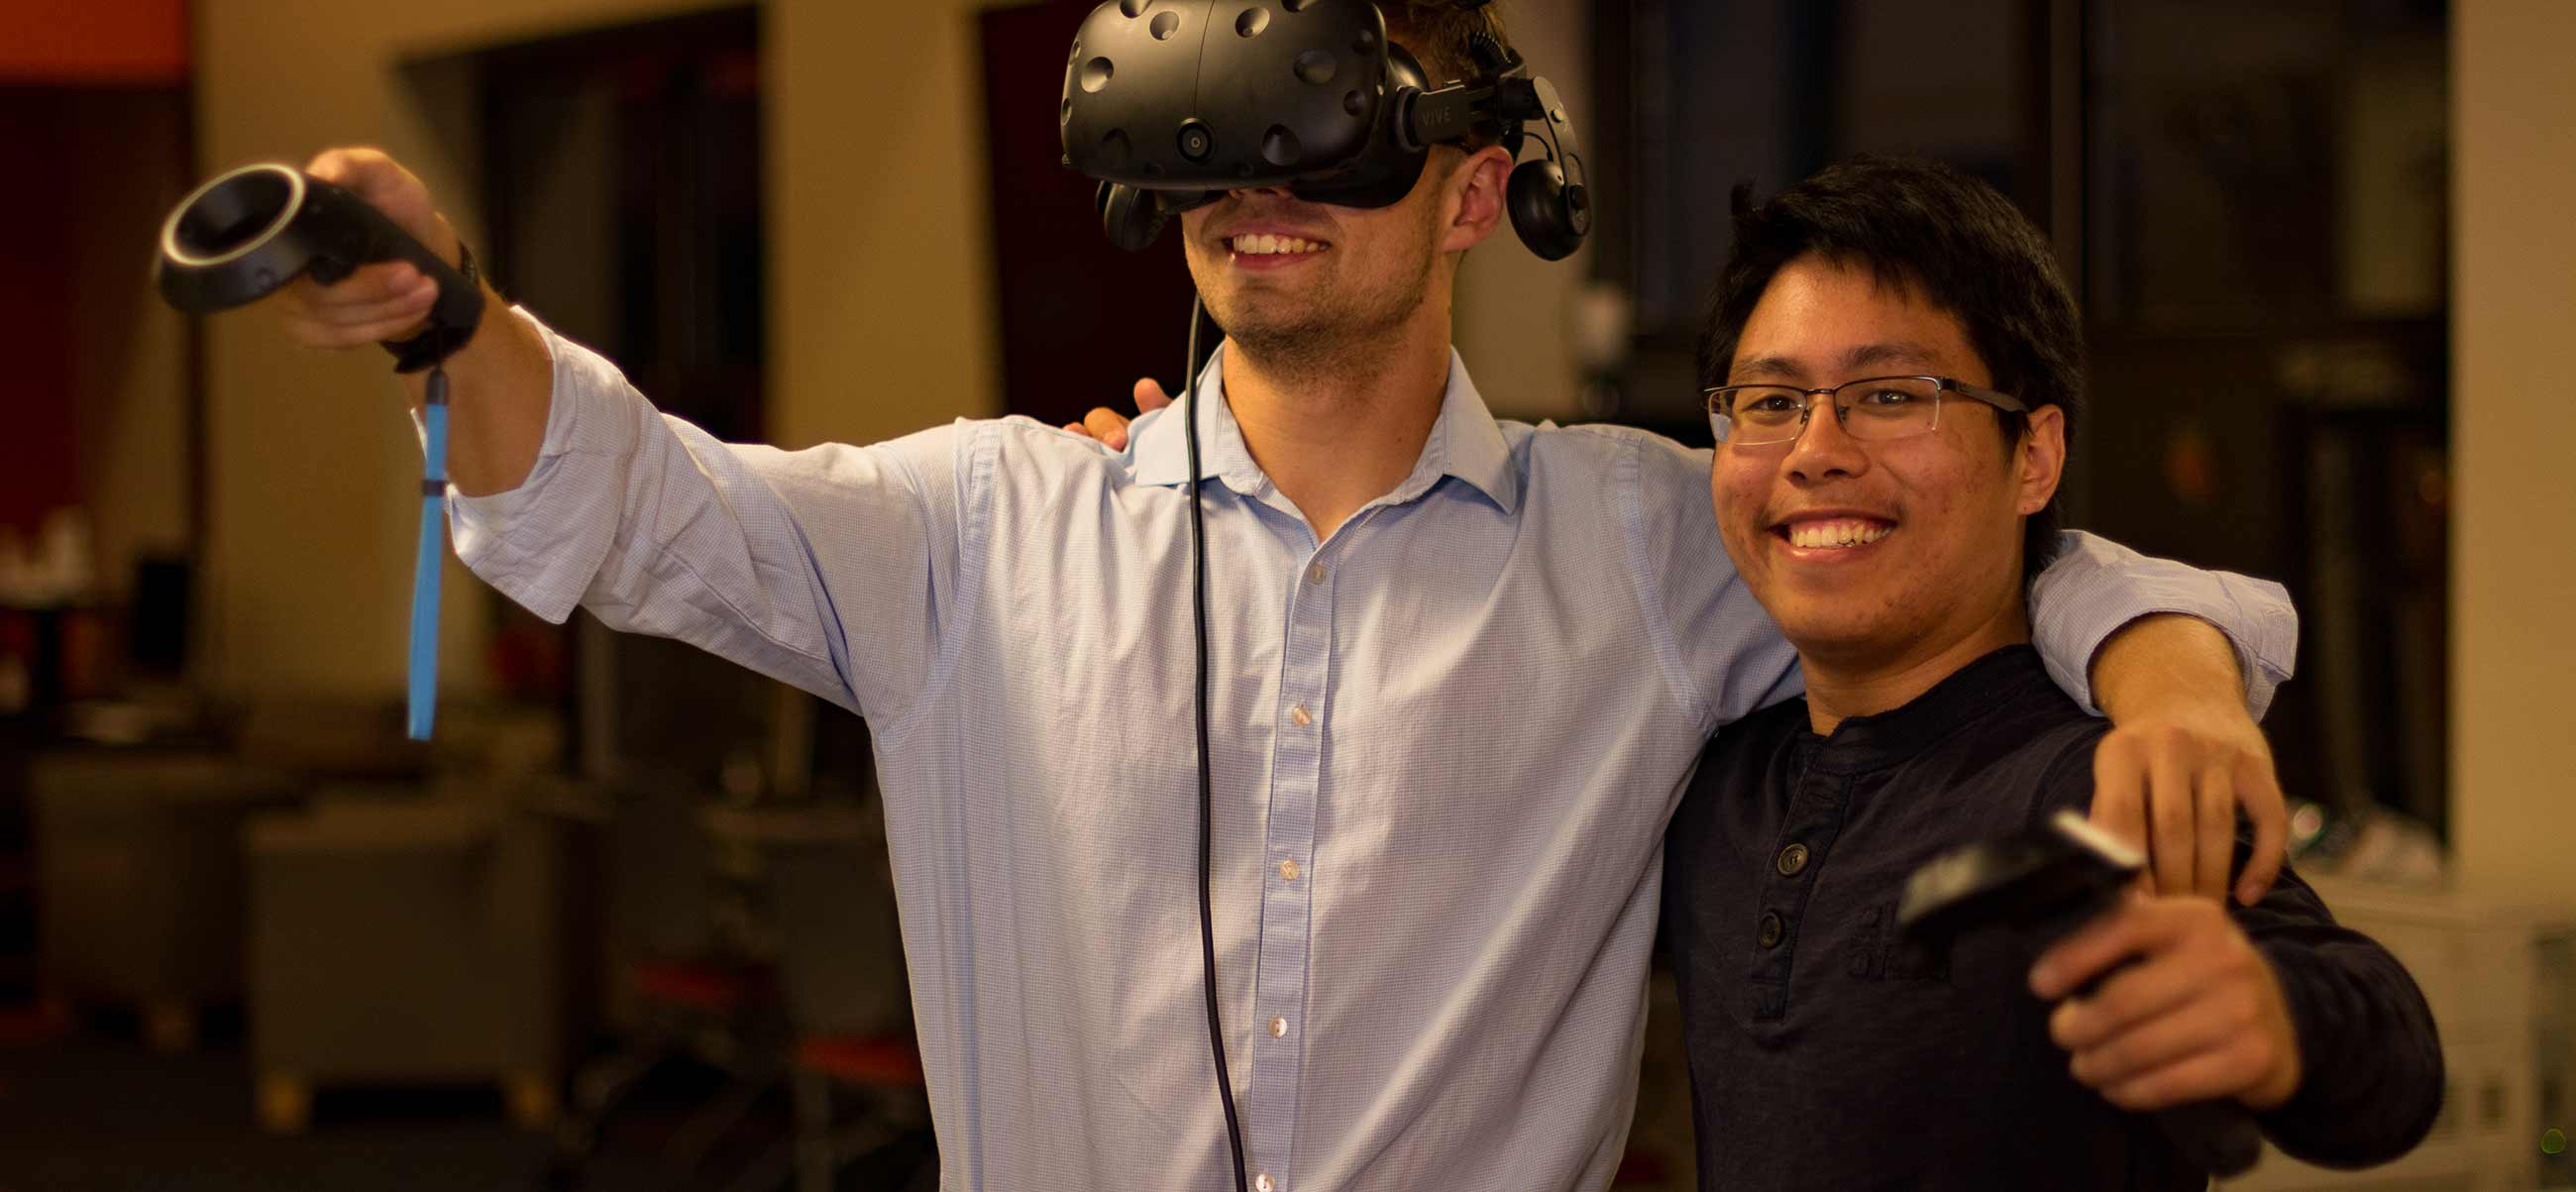 Computer science majors augment historic exploration through virtual reality projects